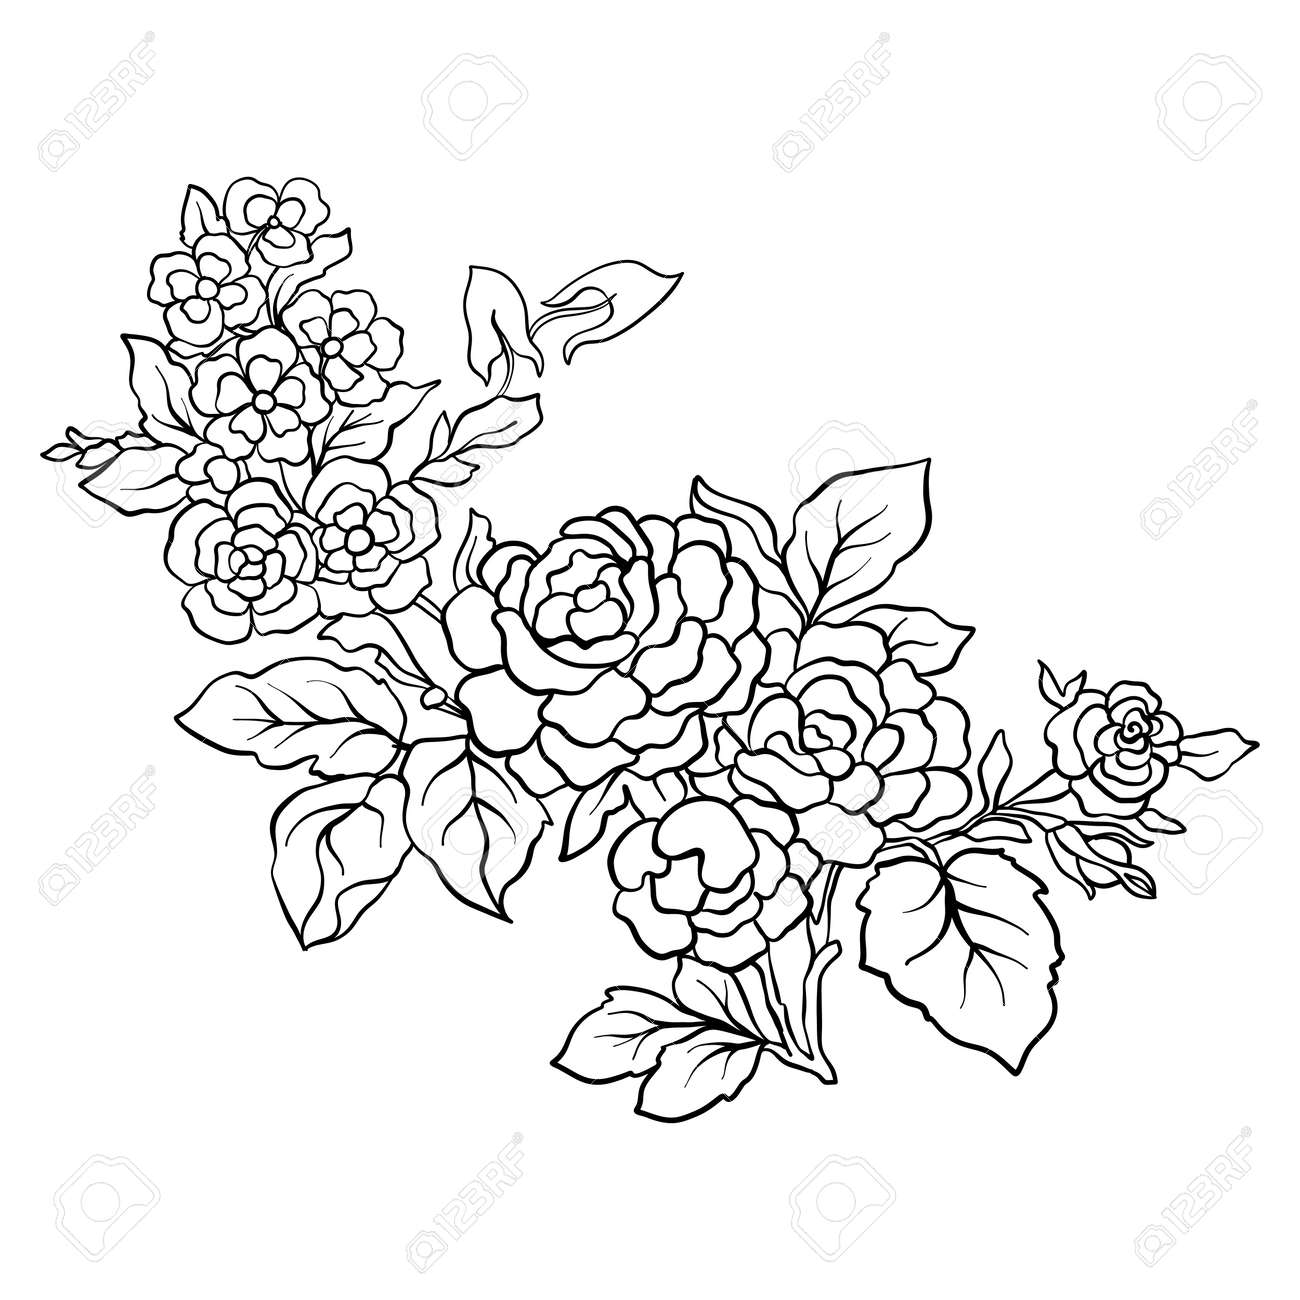 Outline vintage flowers bouquet or pattern